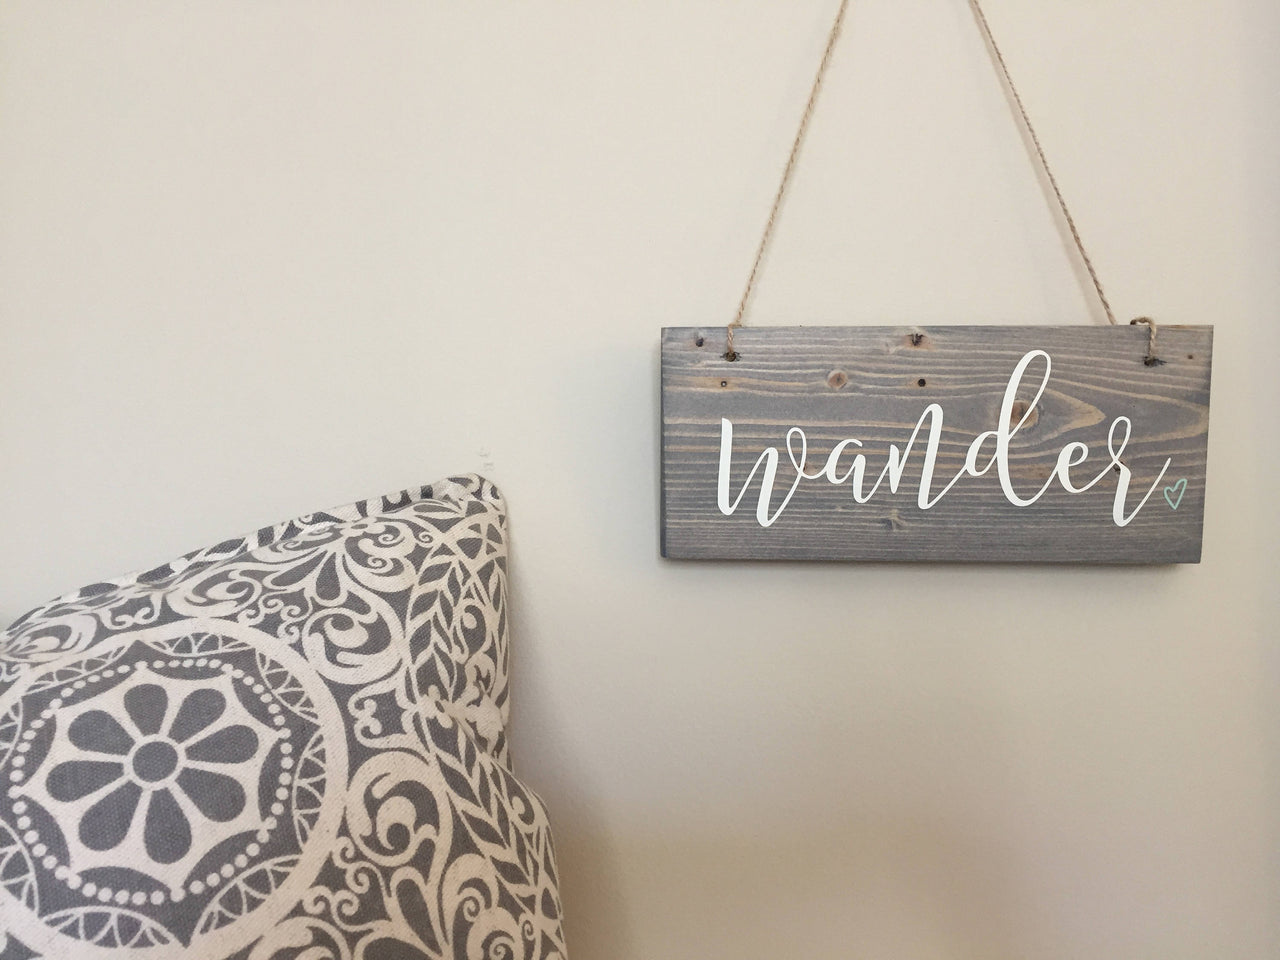 Wander Hanging Sign, Wellness Sign, Wanderlust Sign, Wanderlust Decor, Wanderlust Gift, Camping Decor, Camper Life, Lake Life, Camping Life